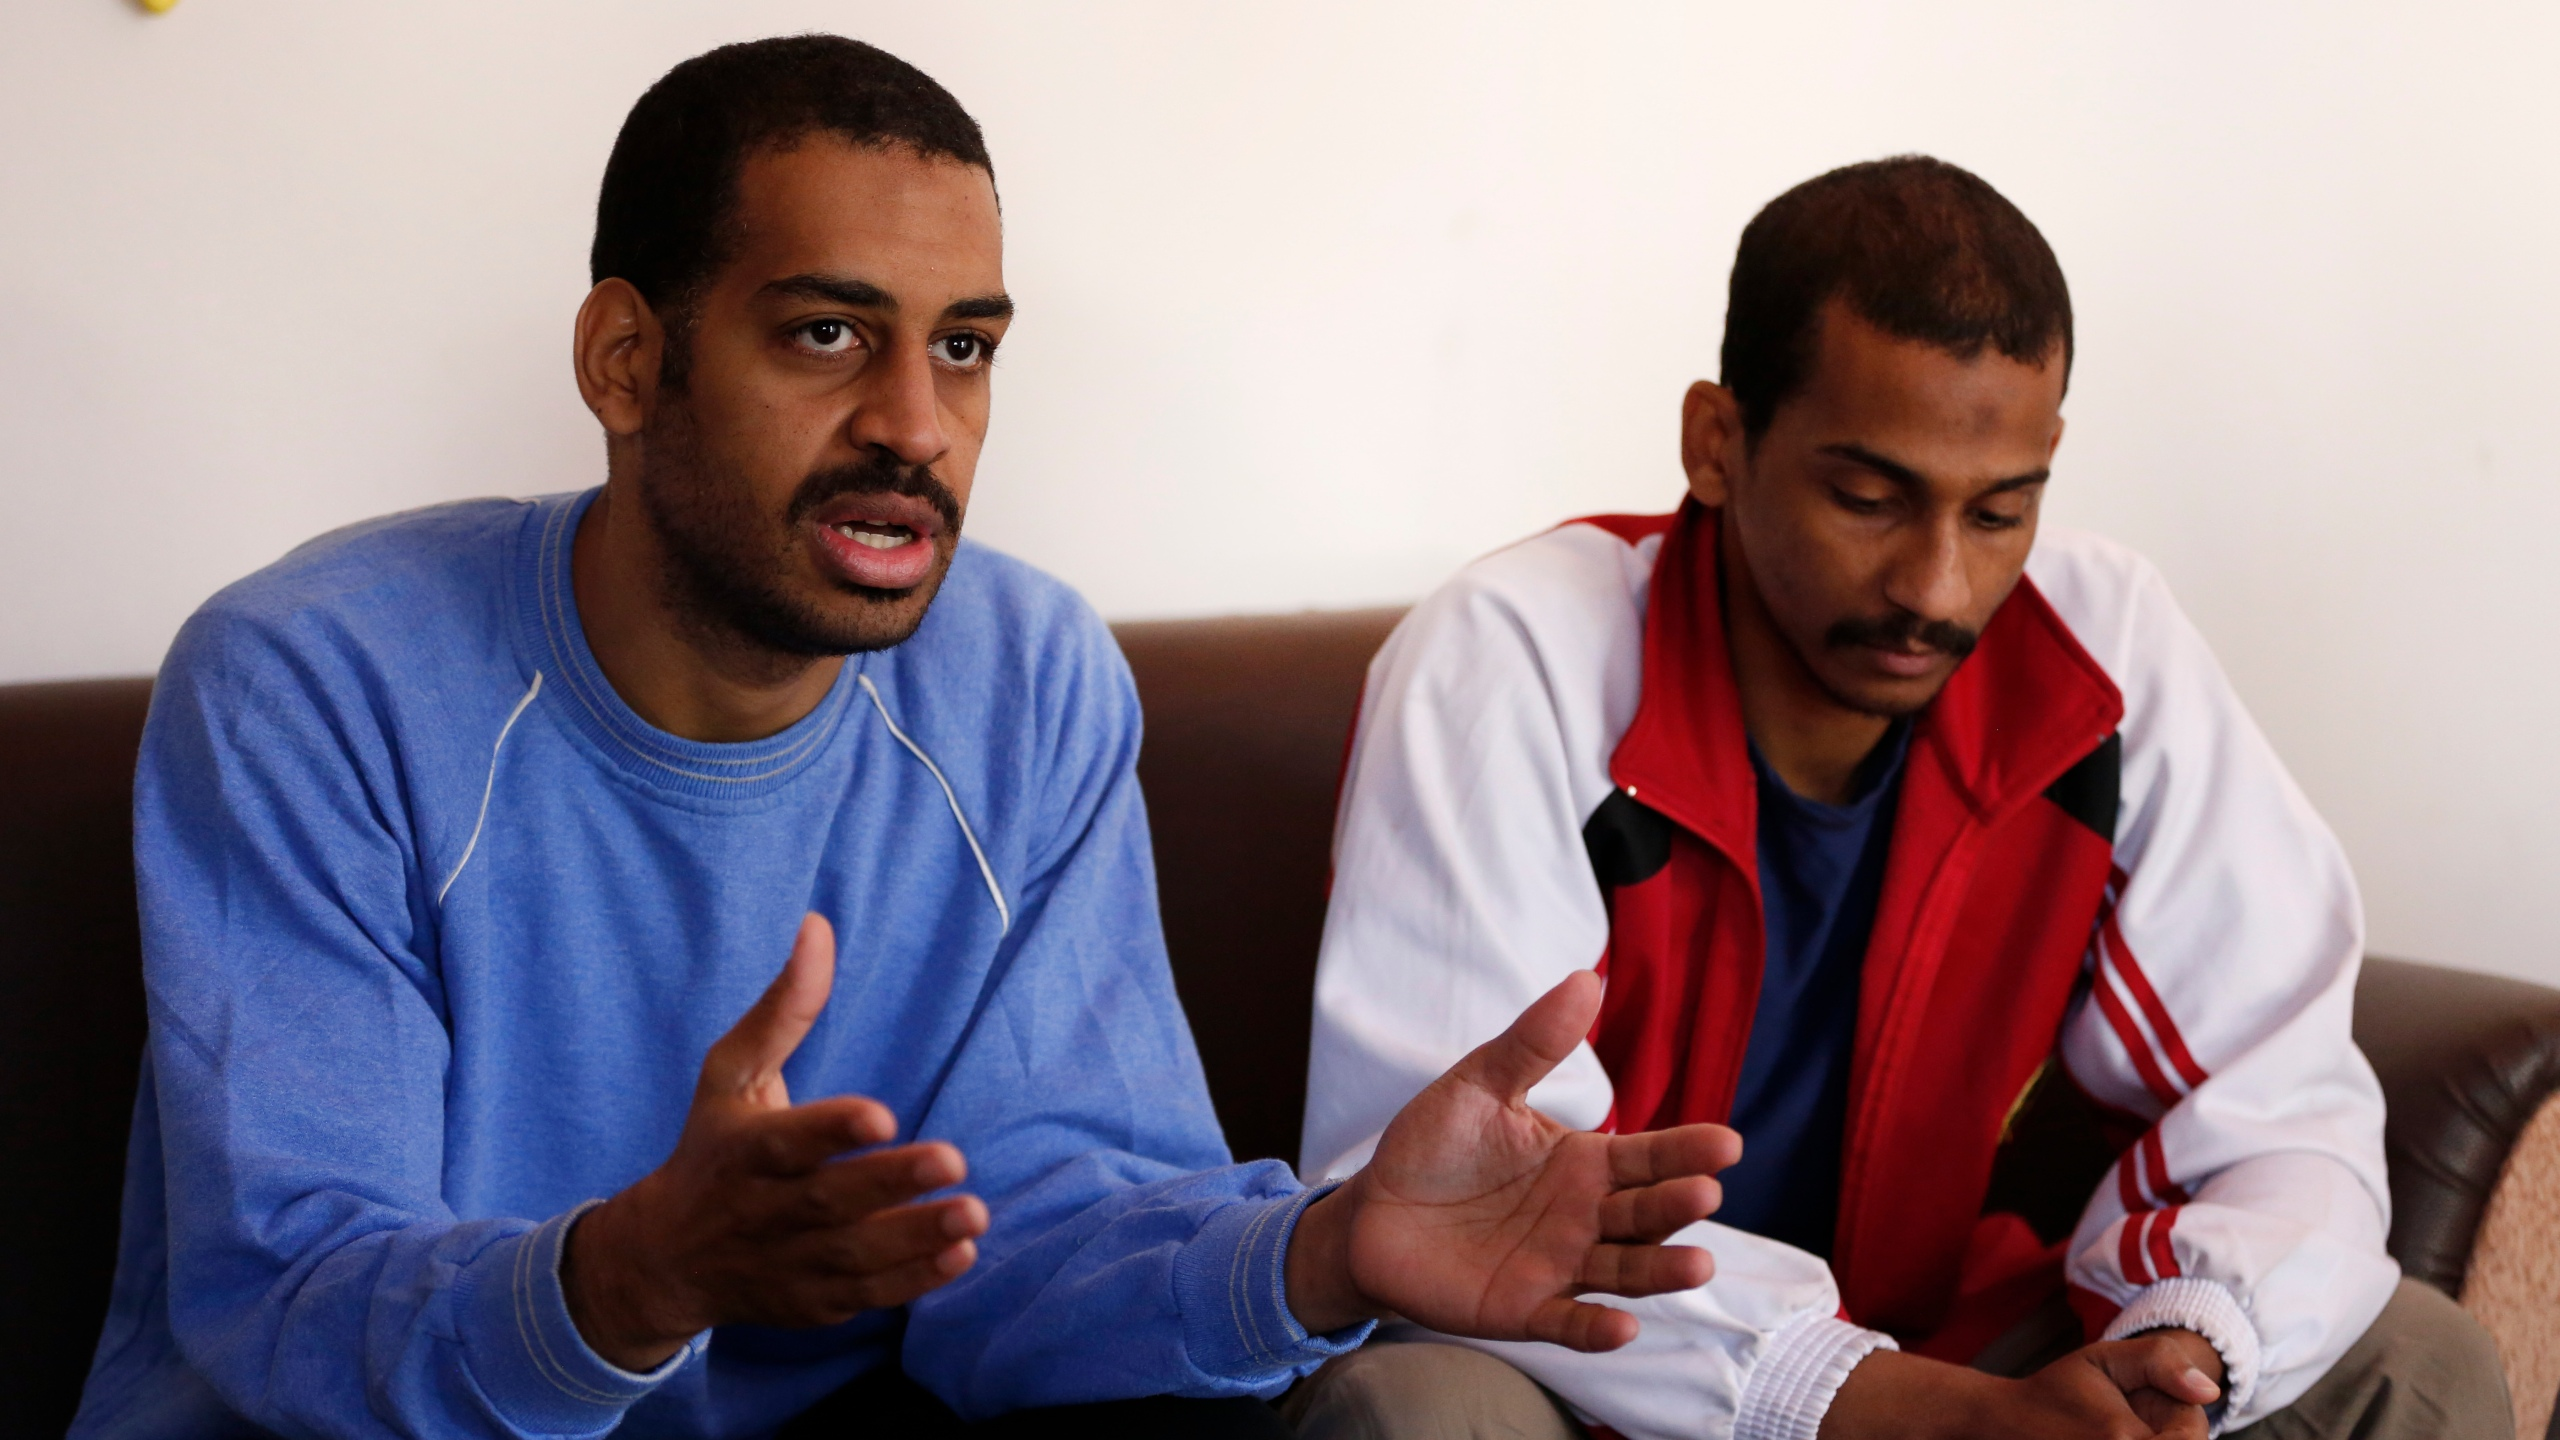 "In this March 30, 2019, file photo, Alexanda Amon Kotey, left, and El Shafee Elsheikh, who were allegedly among four British jihadis who made up a brutal Islamic State cell dubbed ""The Beatles,"" speak during an interview with The Associated Press at a security center in Kobani, Syria. The Justice Department is preparing to announce charges Wednesday against two men from Britain who joined the Islamic State and were part of a cell that beheaded Western hostages, a law enforcement official said. Their arrival in the U.S. to face charges sets the stage for arguably the most sensational terrorism prosecution since the 2014 case against the suspected ringleader of a deadly attack on the diplomatic compound in Benghazi, Libya.(AP Photo/Hussein Malla, File)"